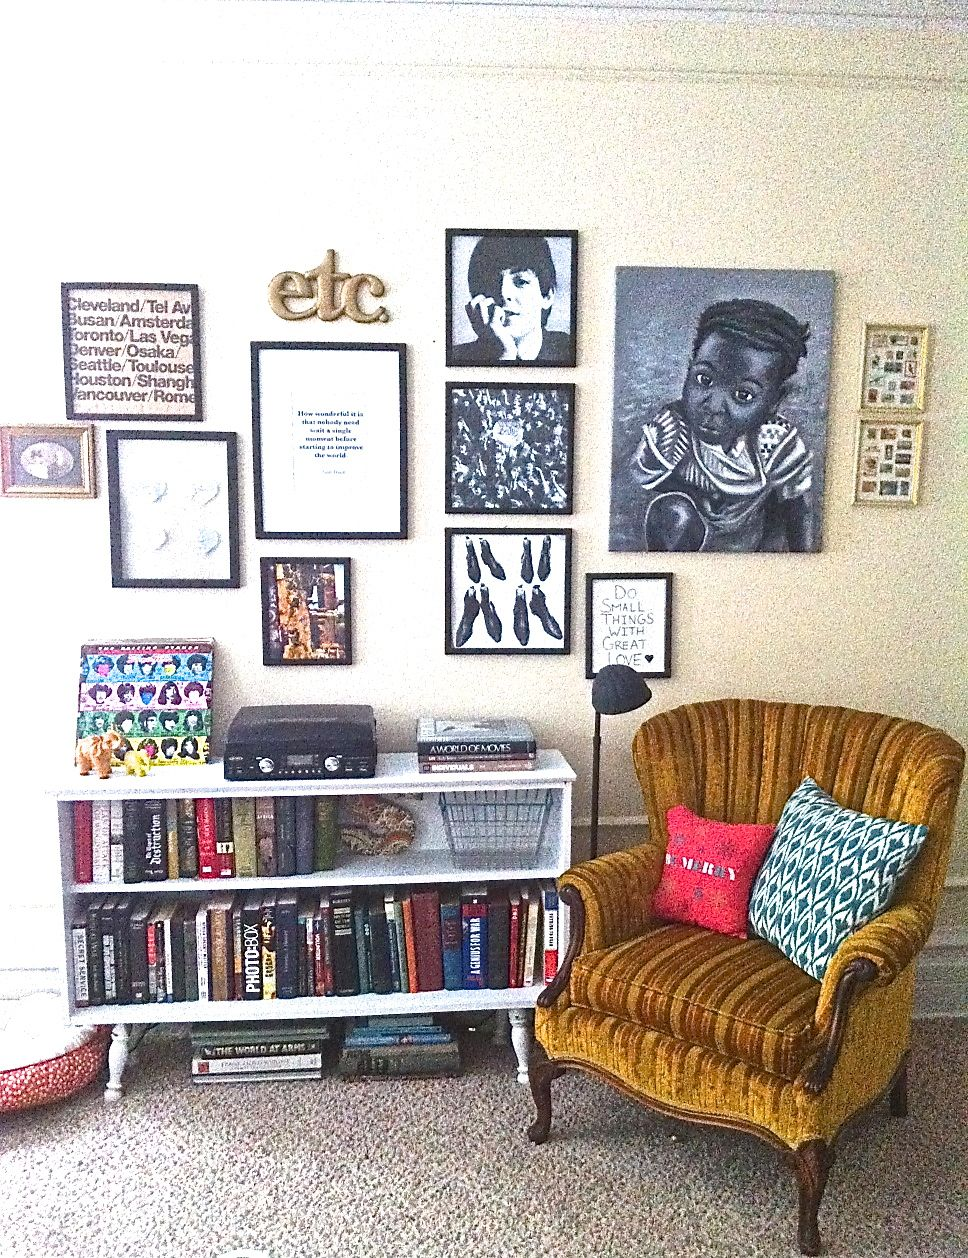 Small space eclectic collection wall gallery vintage redo apartment decor art also rh pinterest